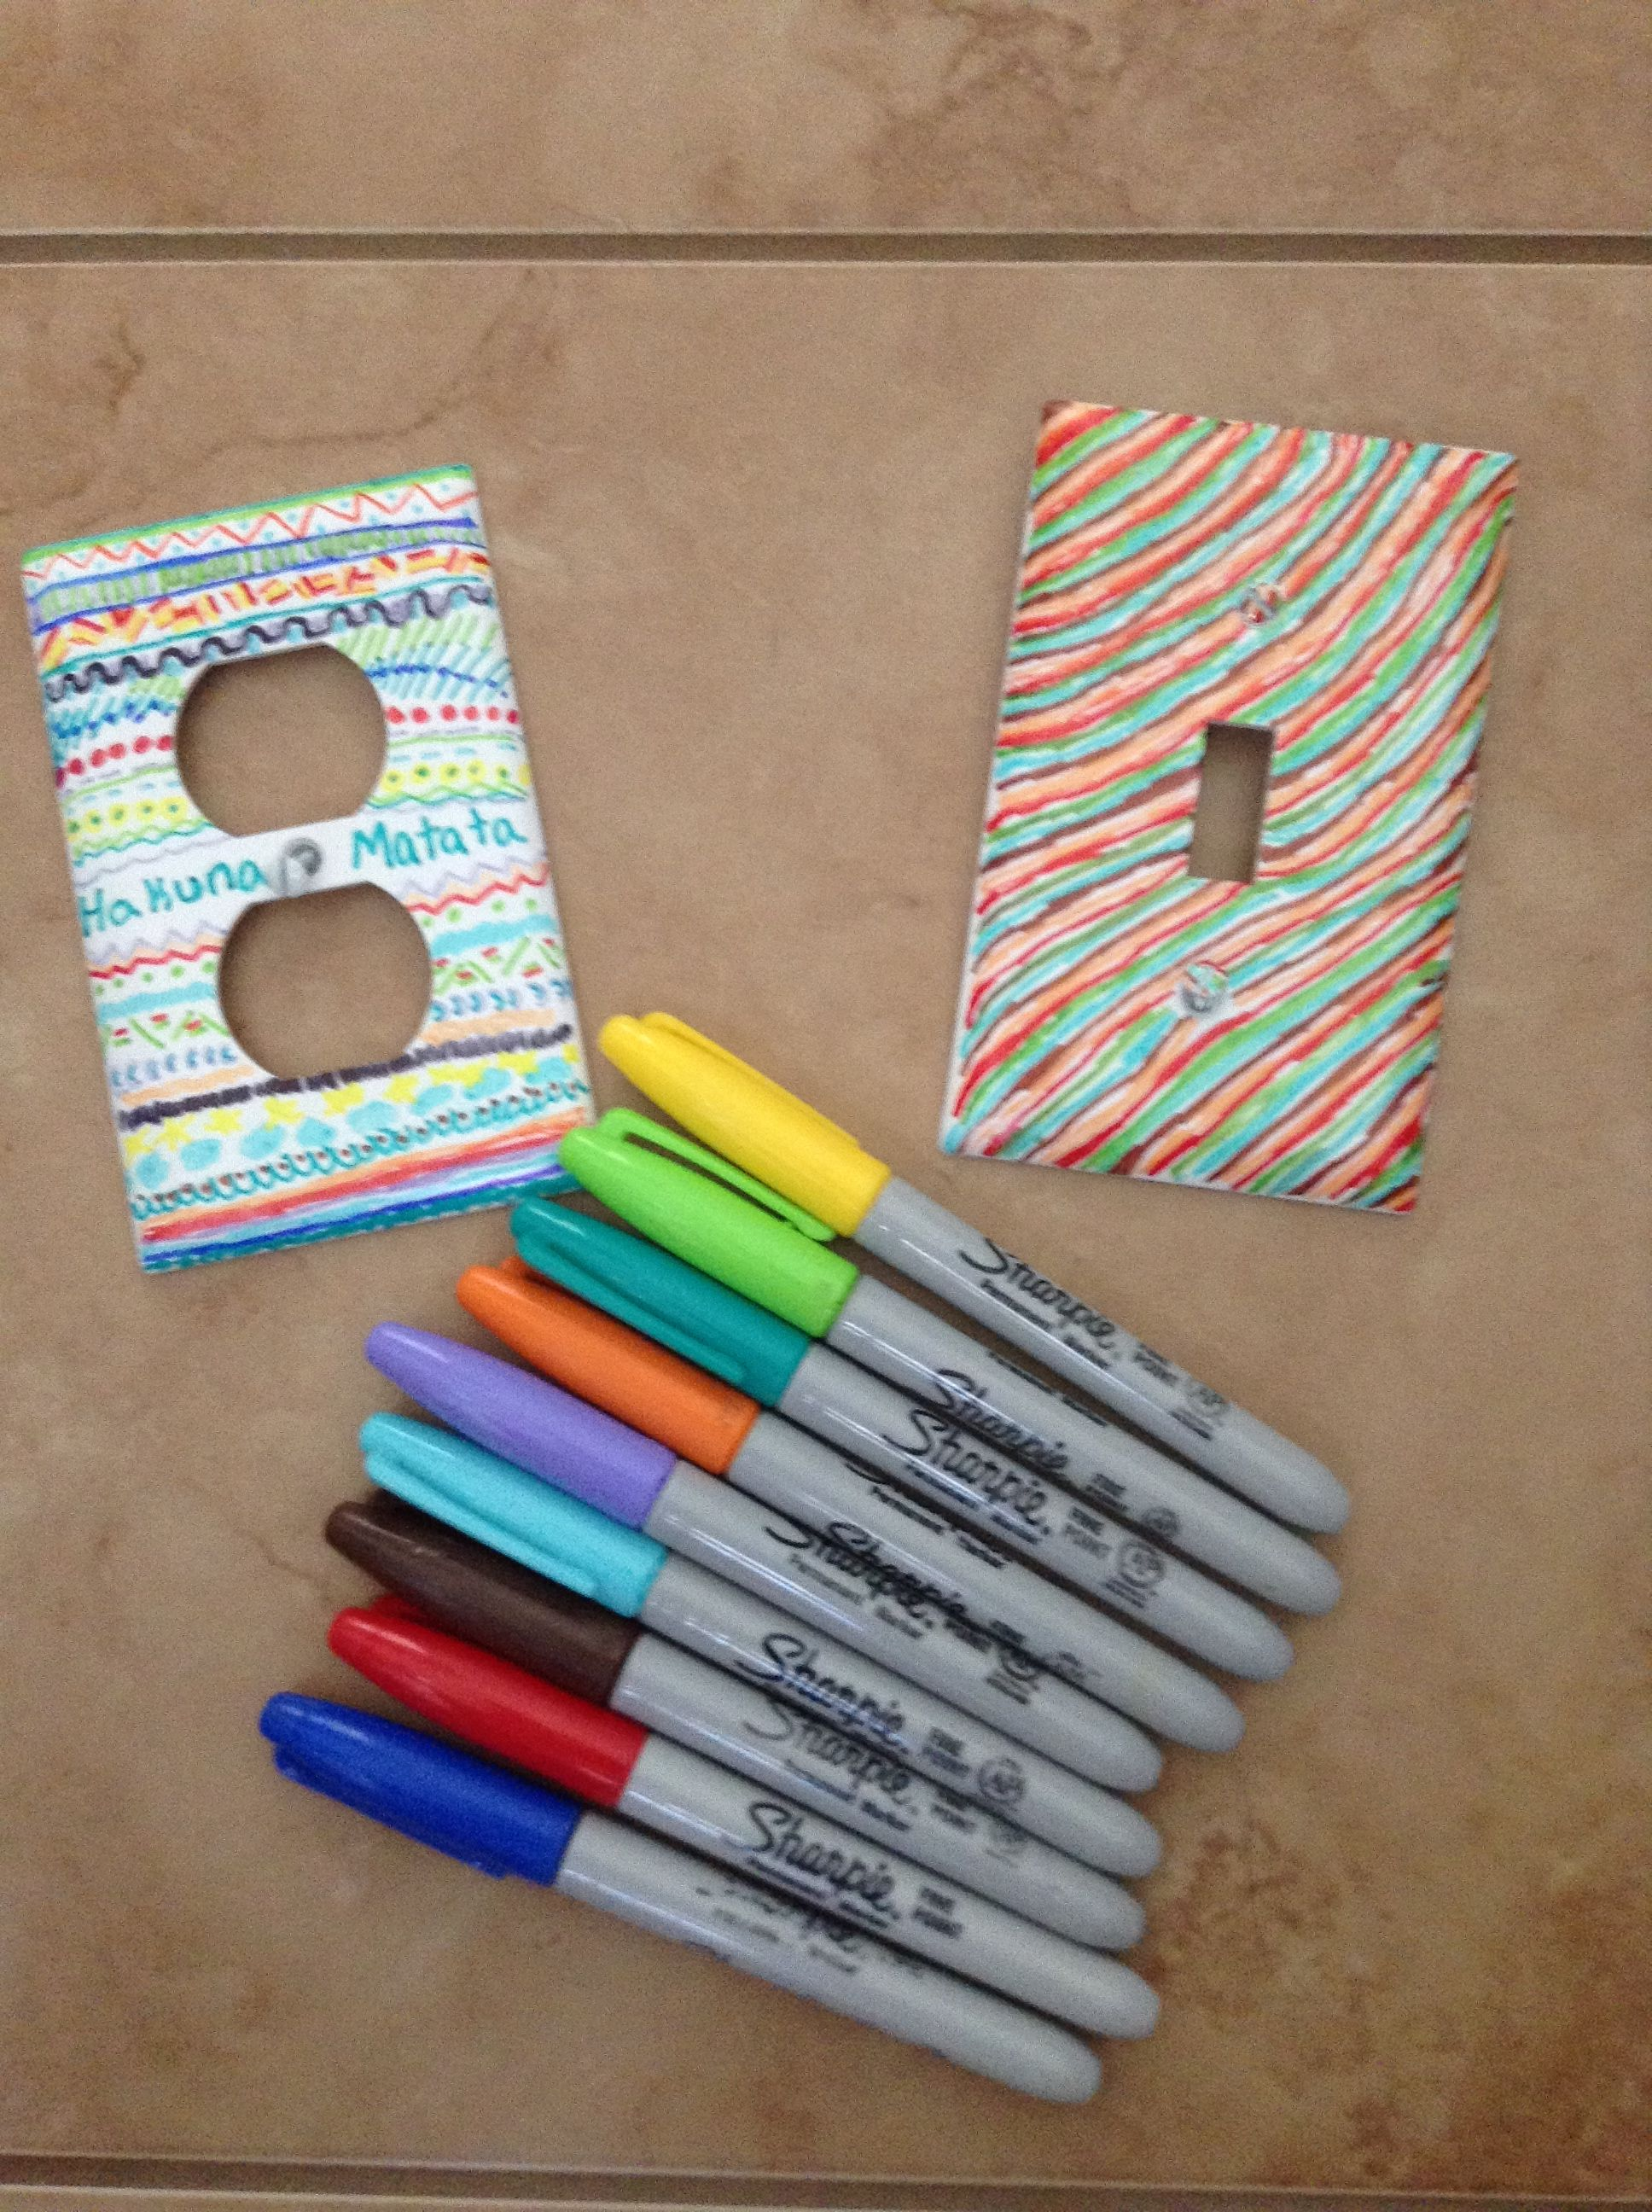 Diy Outlet Covers Sharpie On Plain Outlets( 20 Cents At